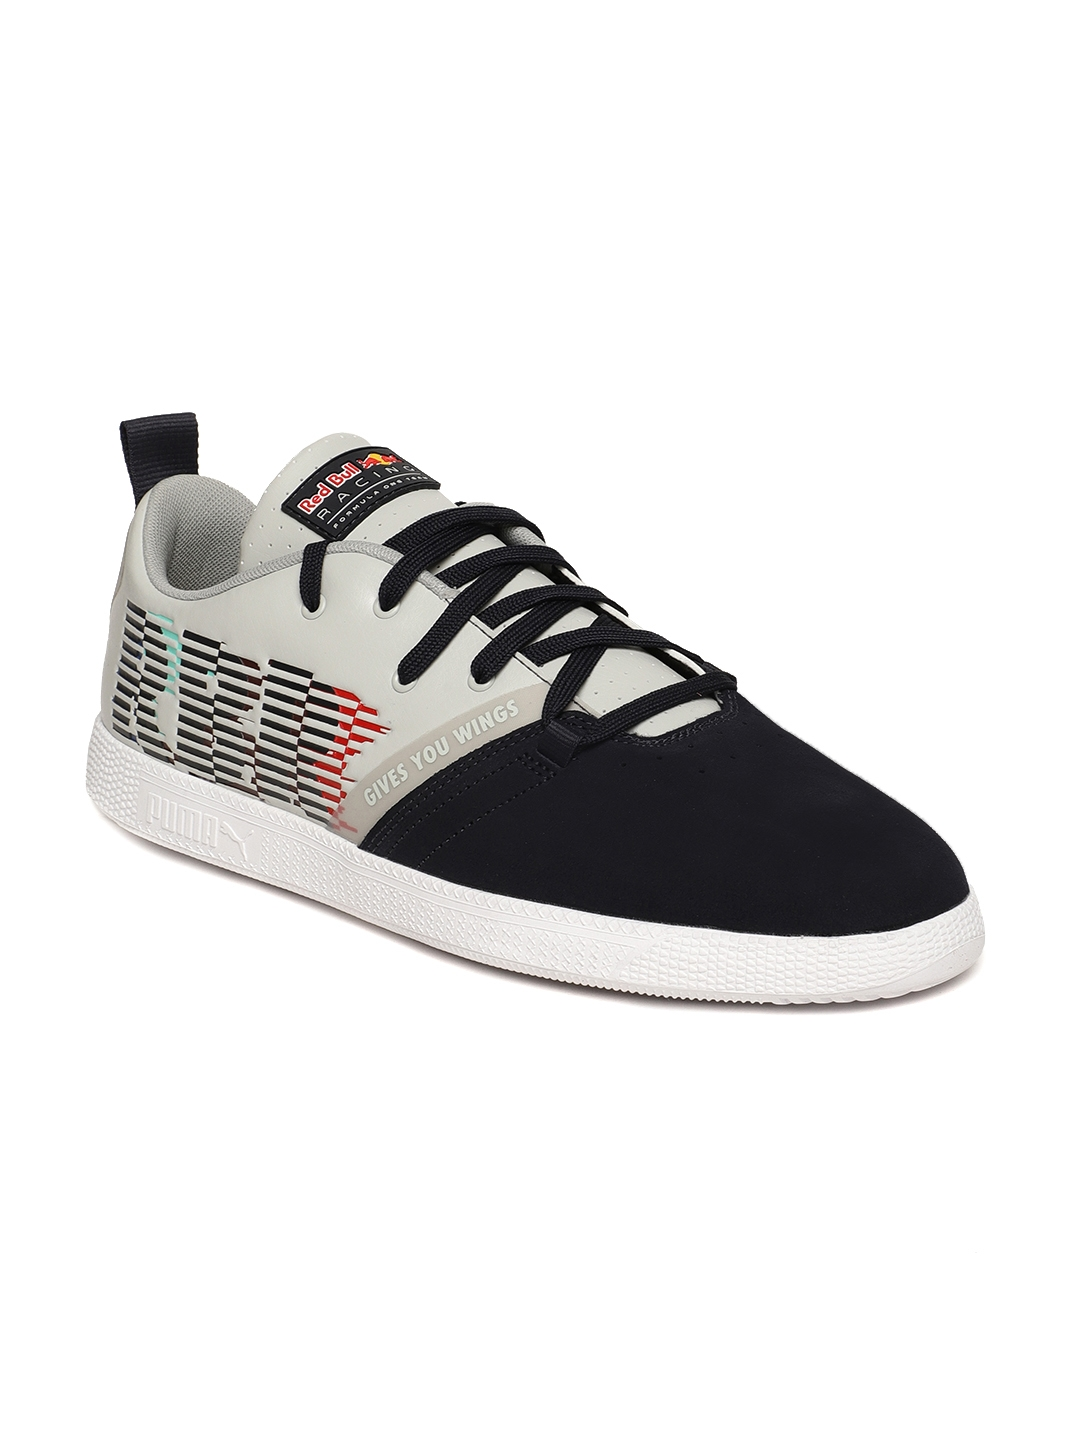 innovative design b9e89 e4c8e Puma Men Navy Blue & Grey RBR Cups Lo Suede Sneakers